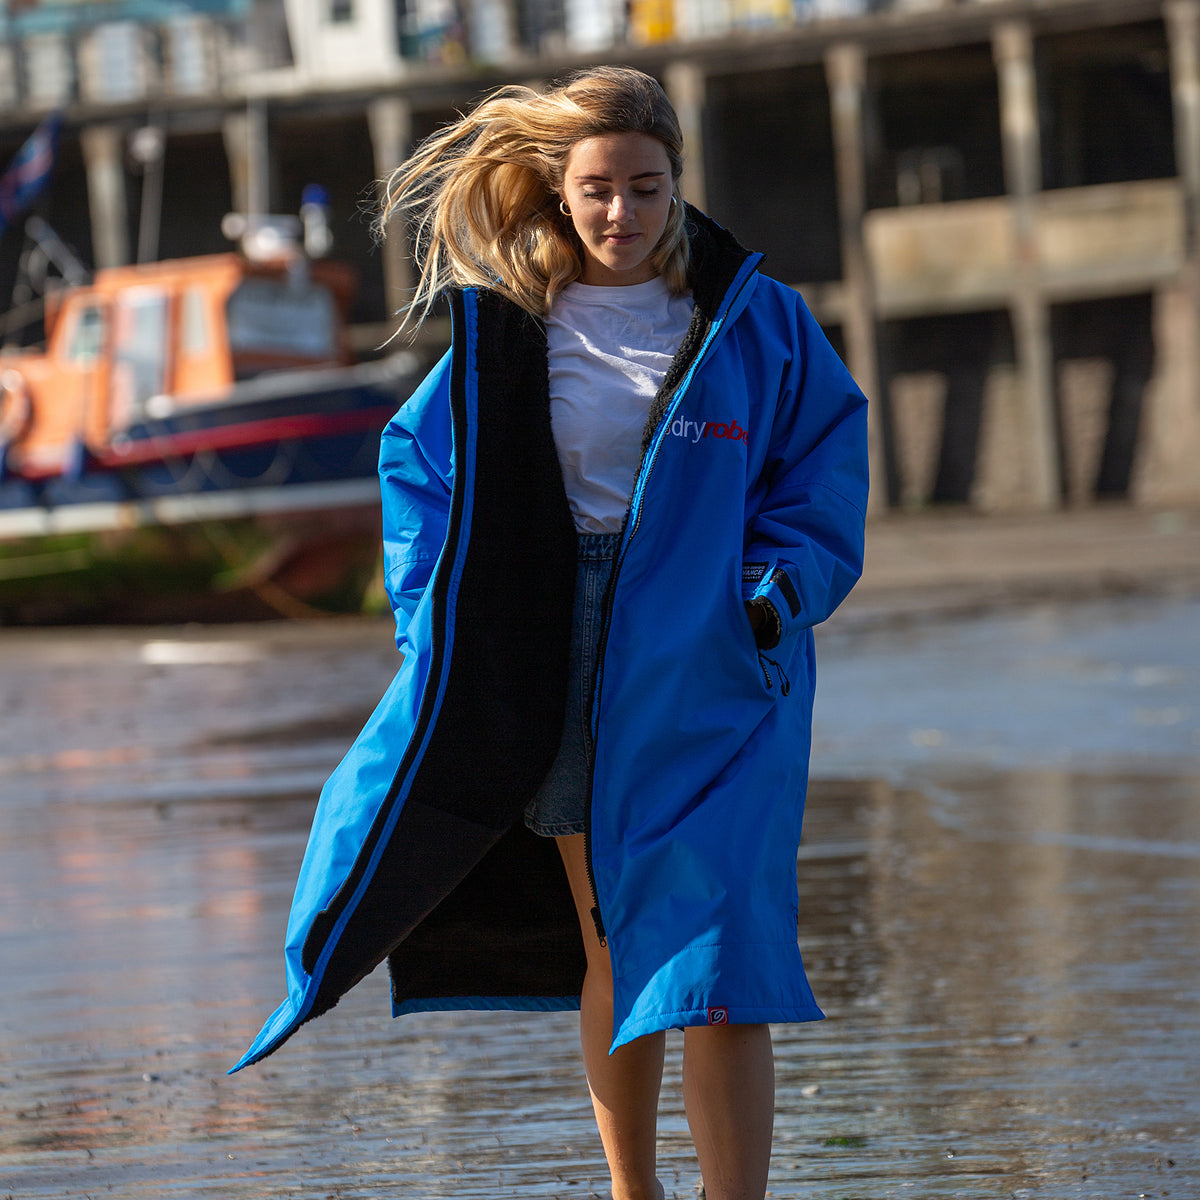 1| dryrobe Advance Long Sleeve Sky Cobalt Blue Black Lifestyle